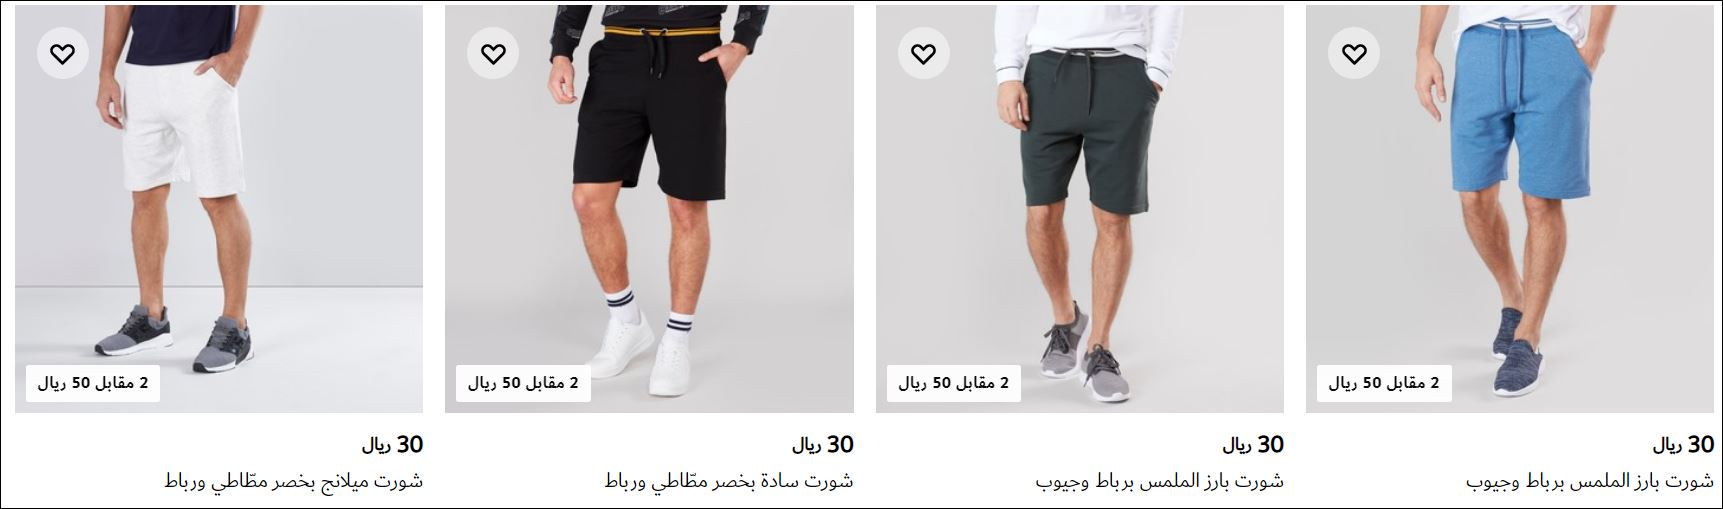 city max offer today حتي 60%